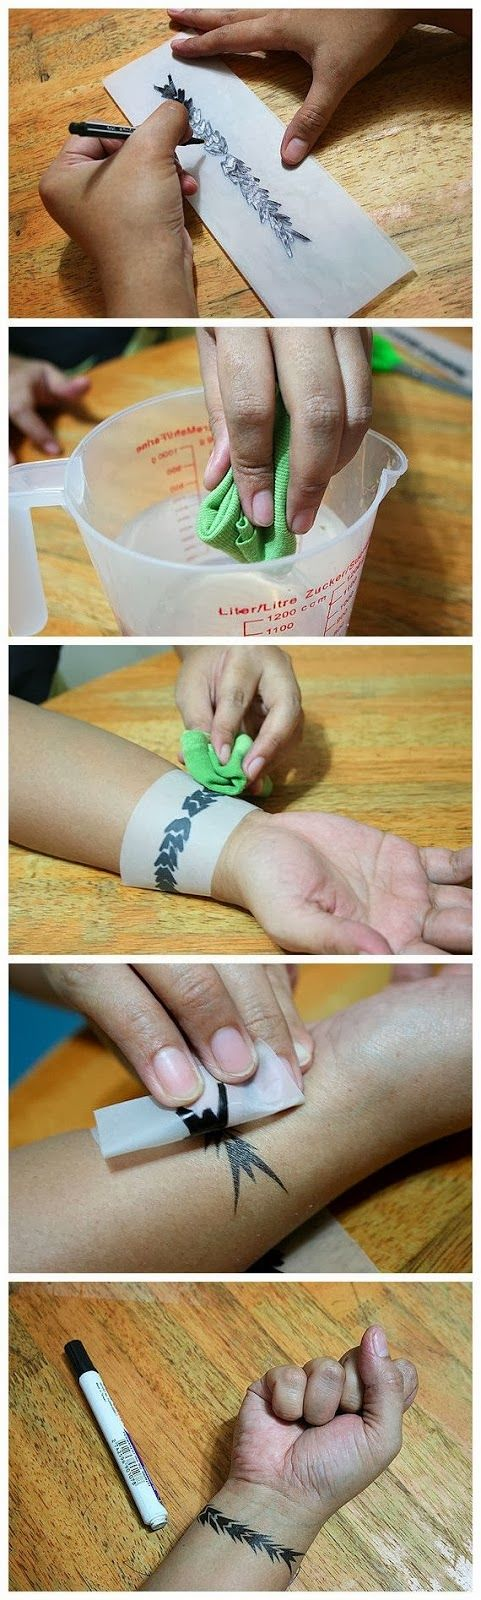 How to Create Your Own Temporary Tattoo | DIY Crafts Tutorials use your contact details instead!